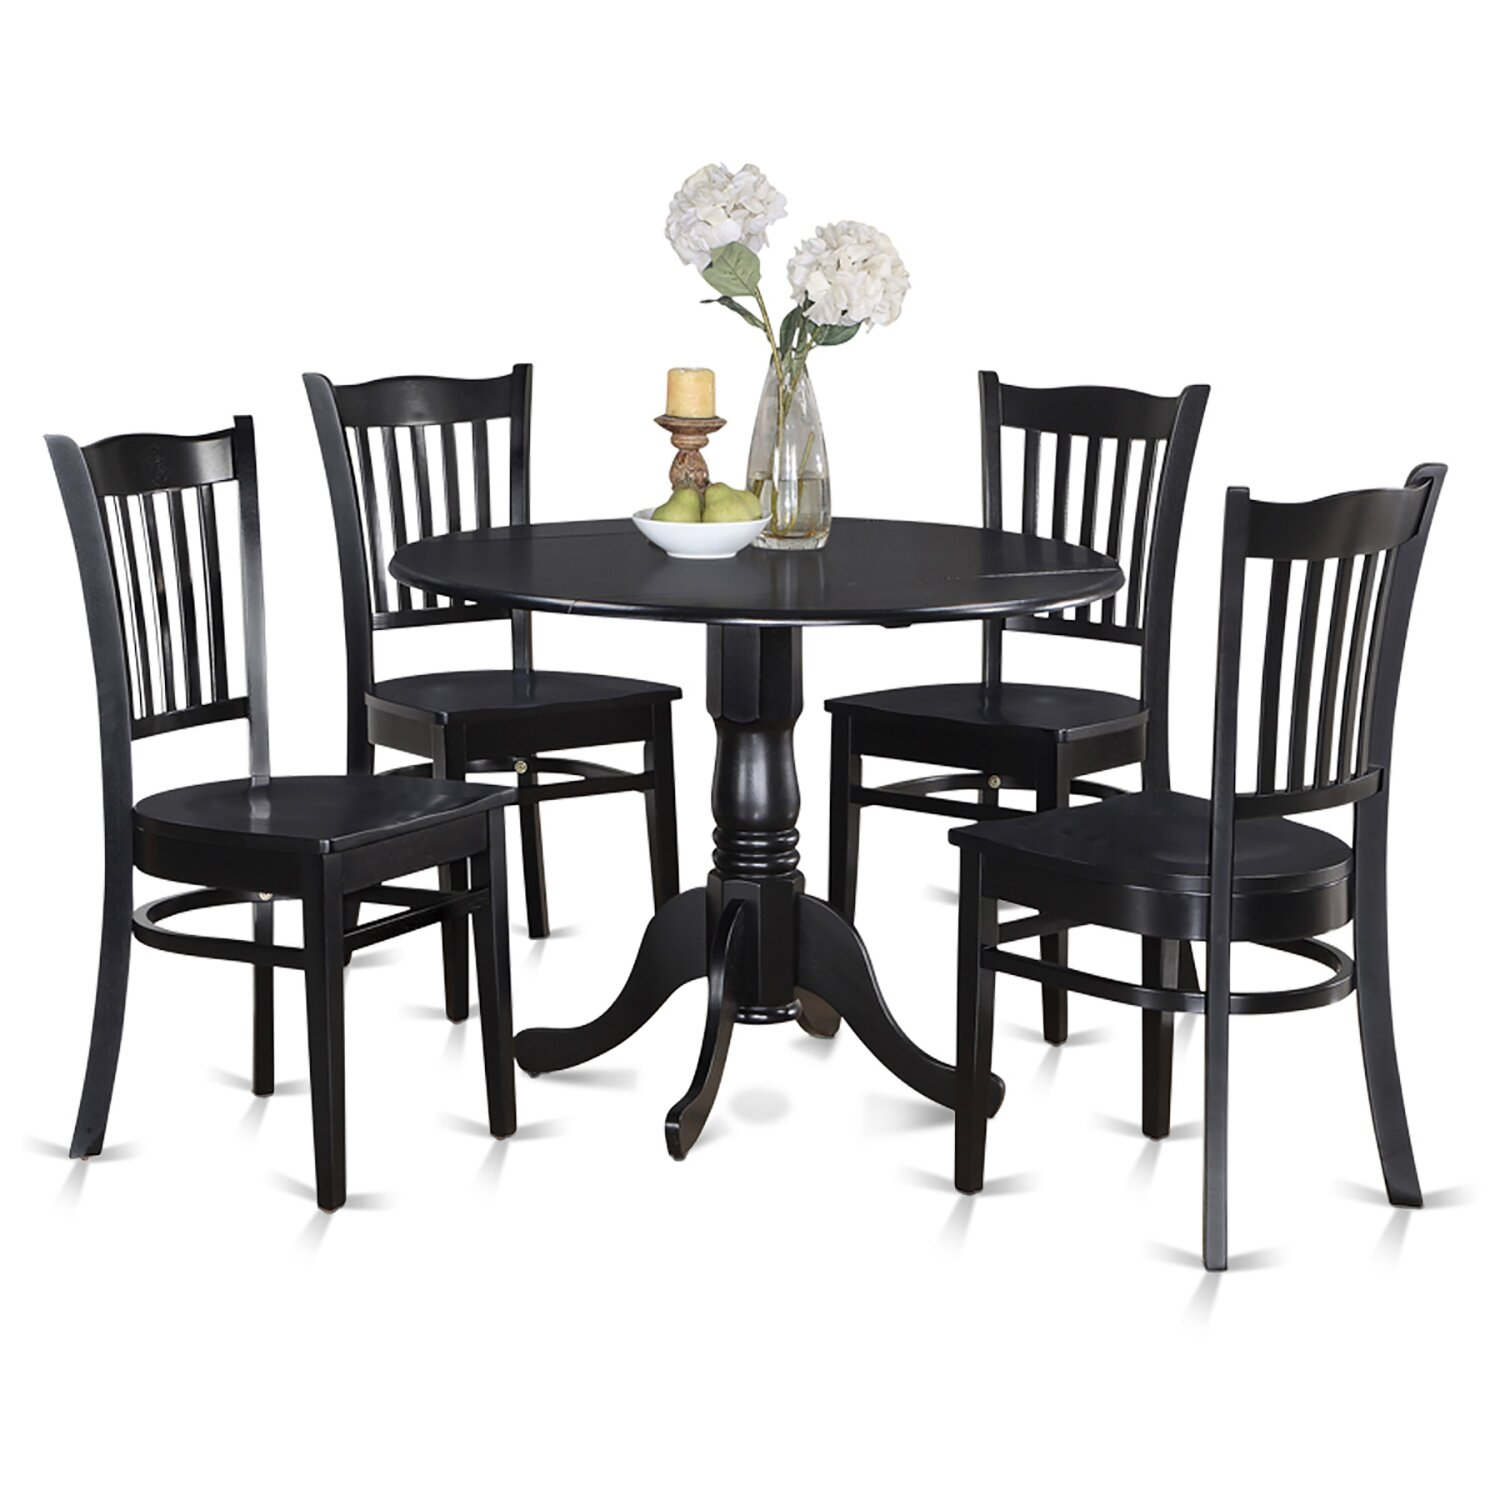 Kitchen Table And Chairs Dublin: Wooden Importers Dublin 5 Piece Dining Set & Reviews